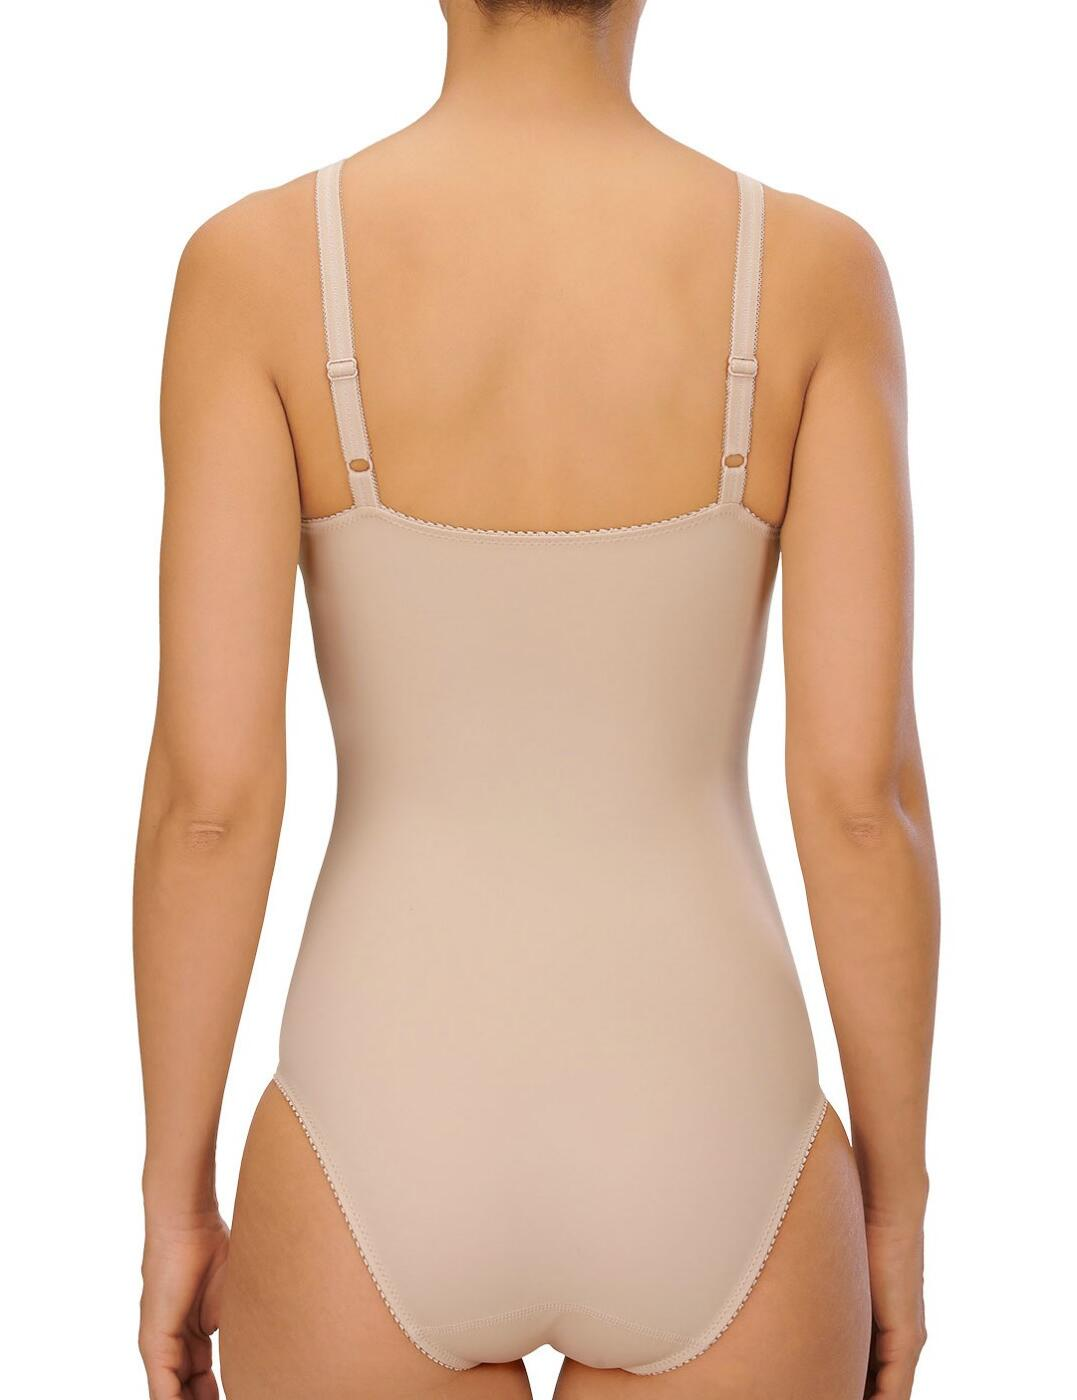 Naturana-Underwired-Non-Padded-Body-3260-New-Womens-Lingerie-Shapewear thumbnail 5